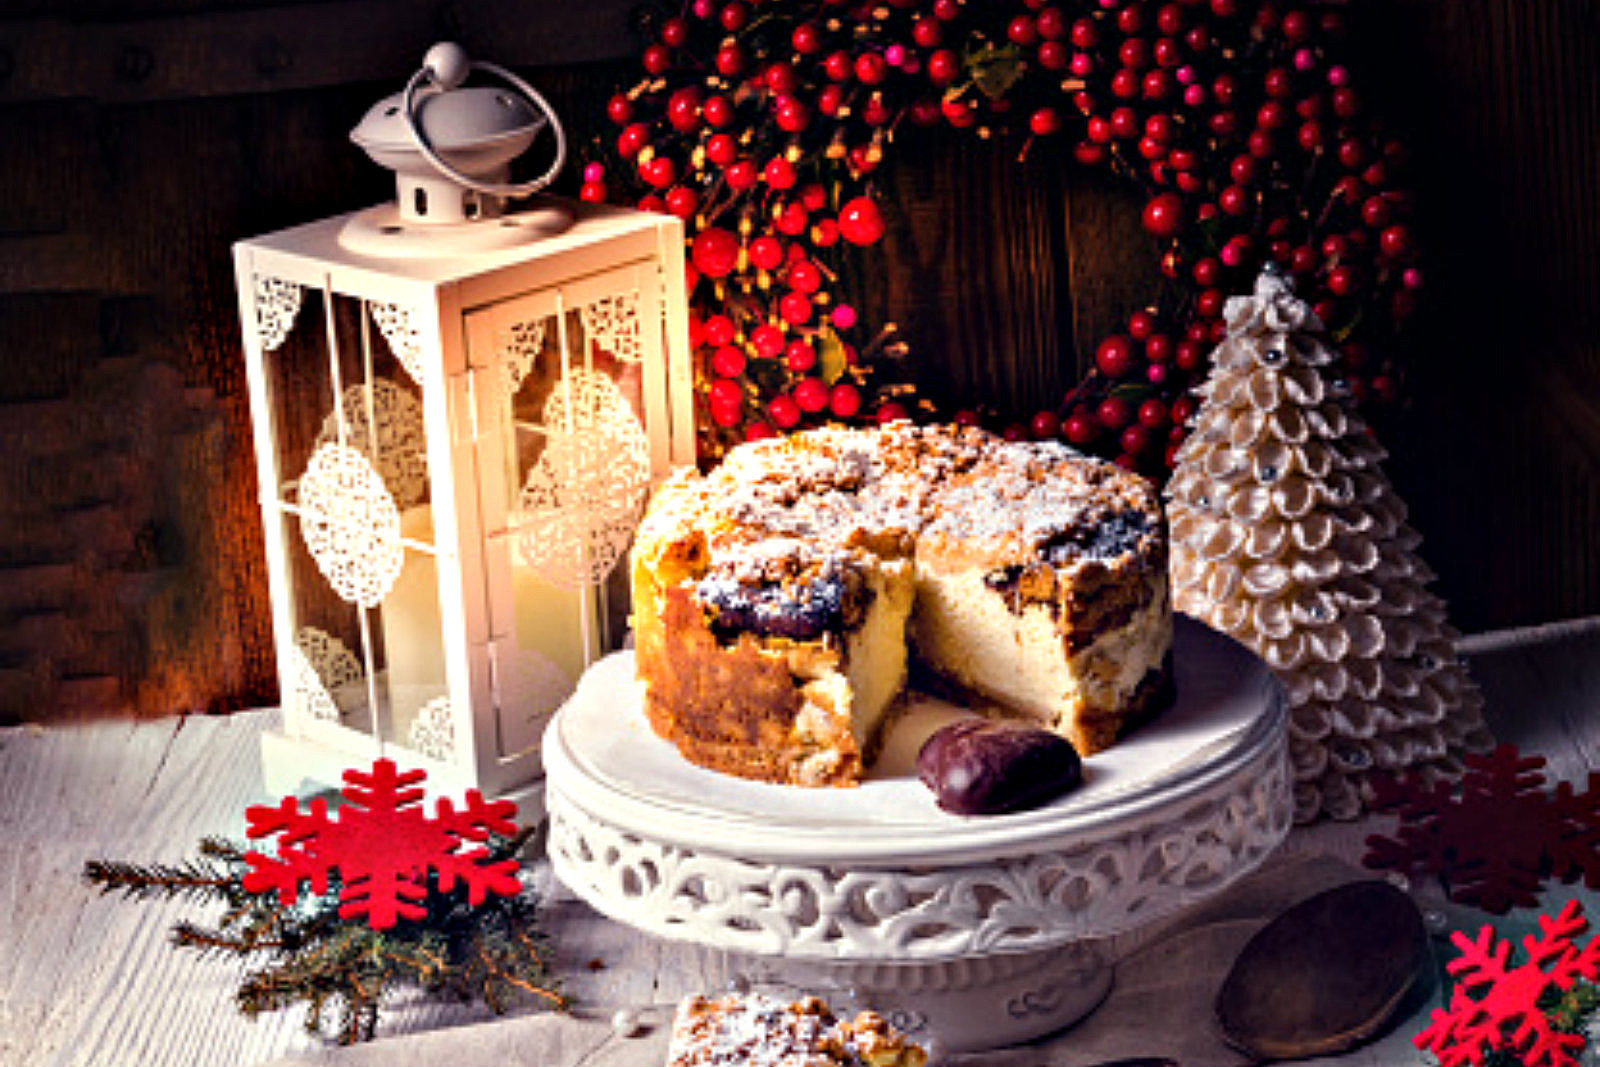 Best Holiday Food Gifts To Send Gift Ideas